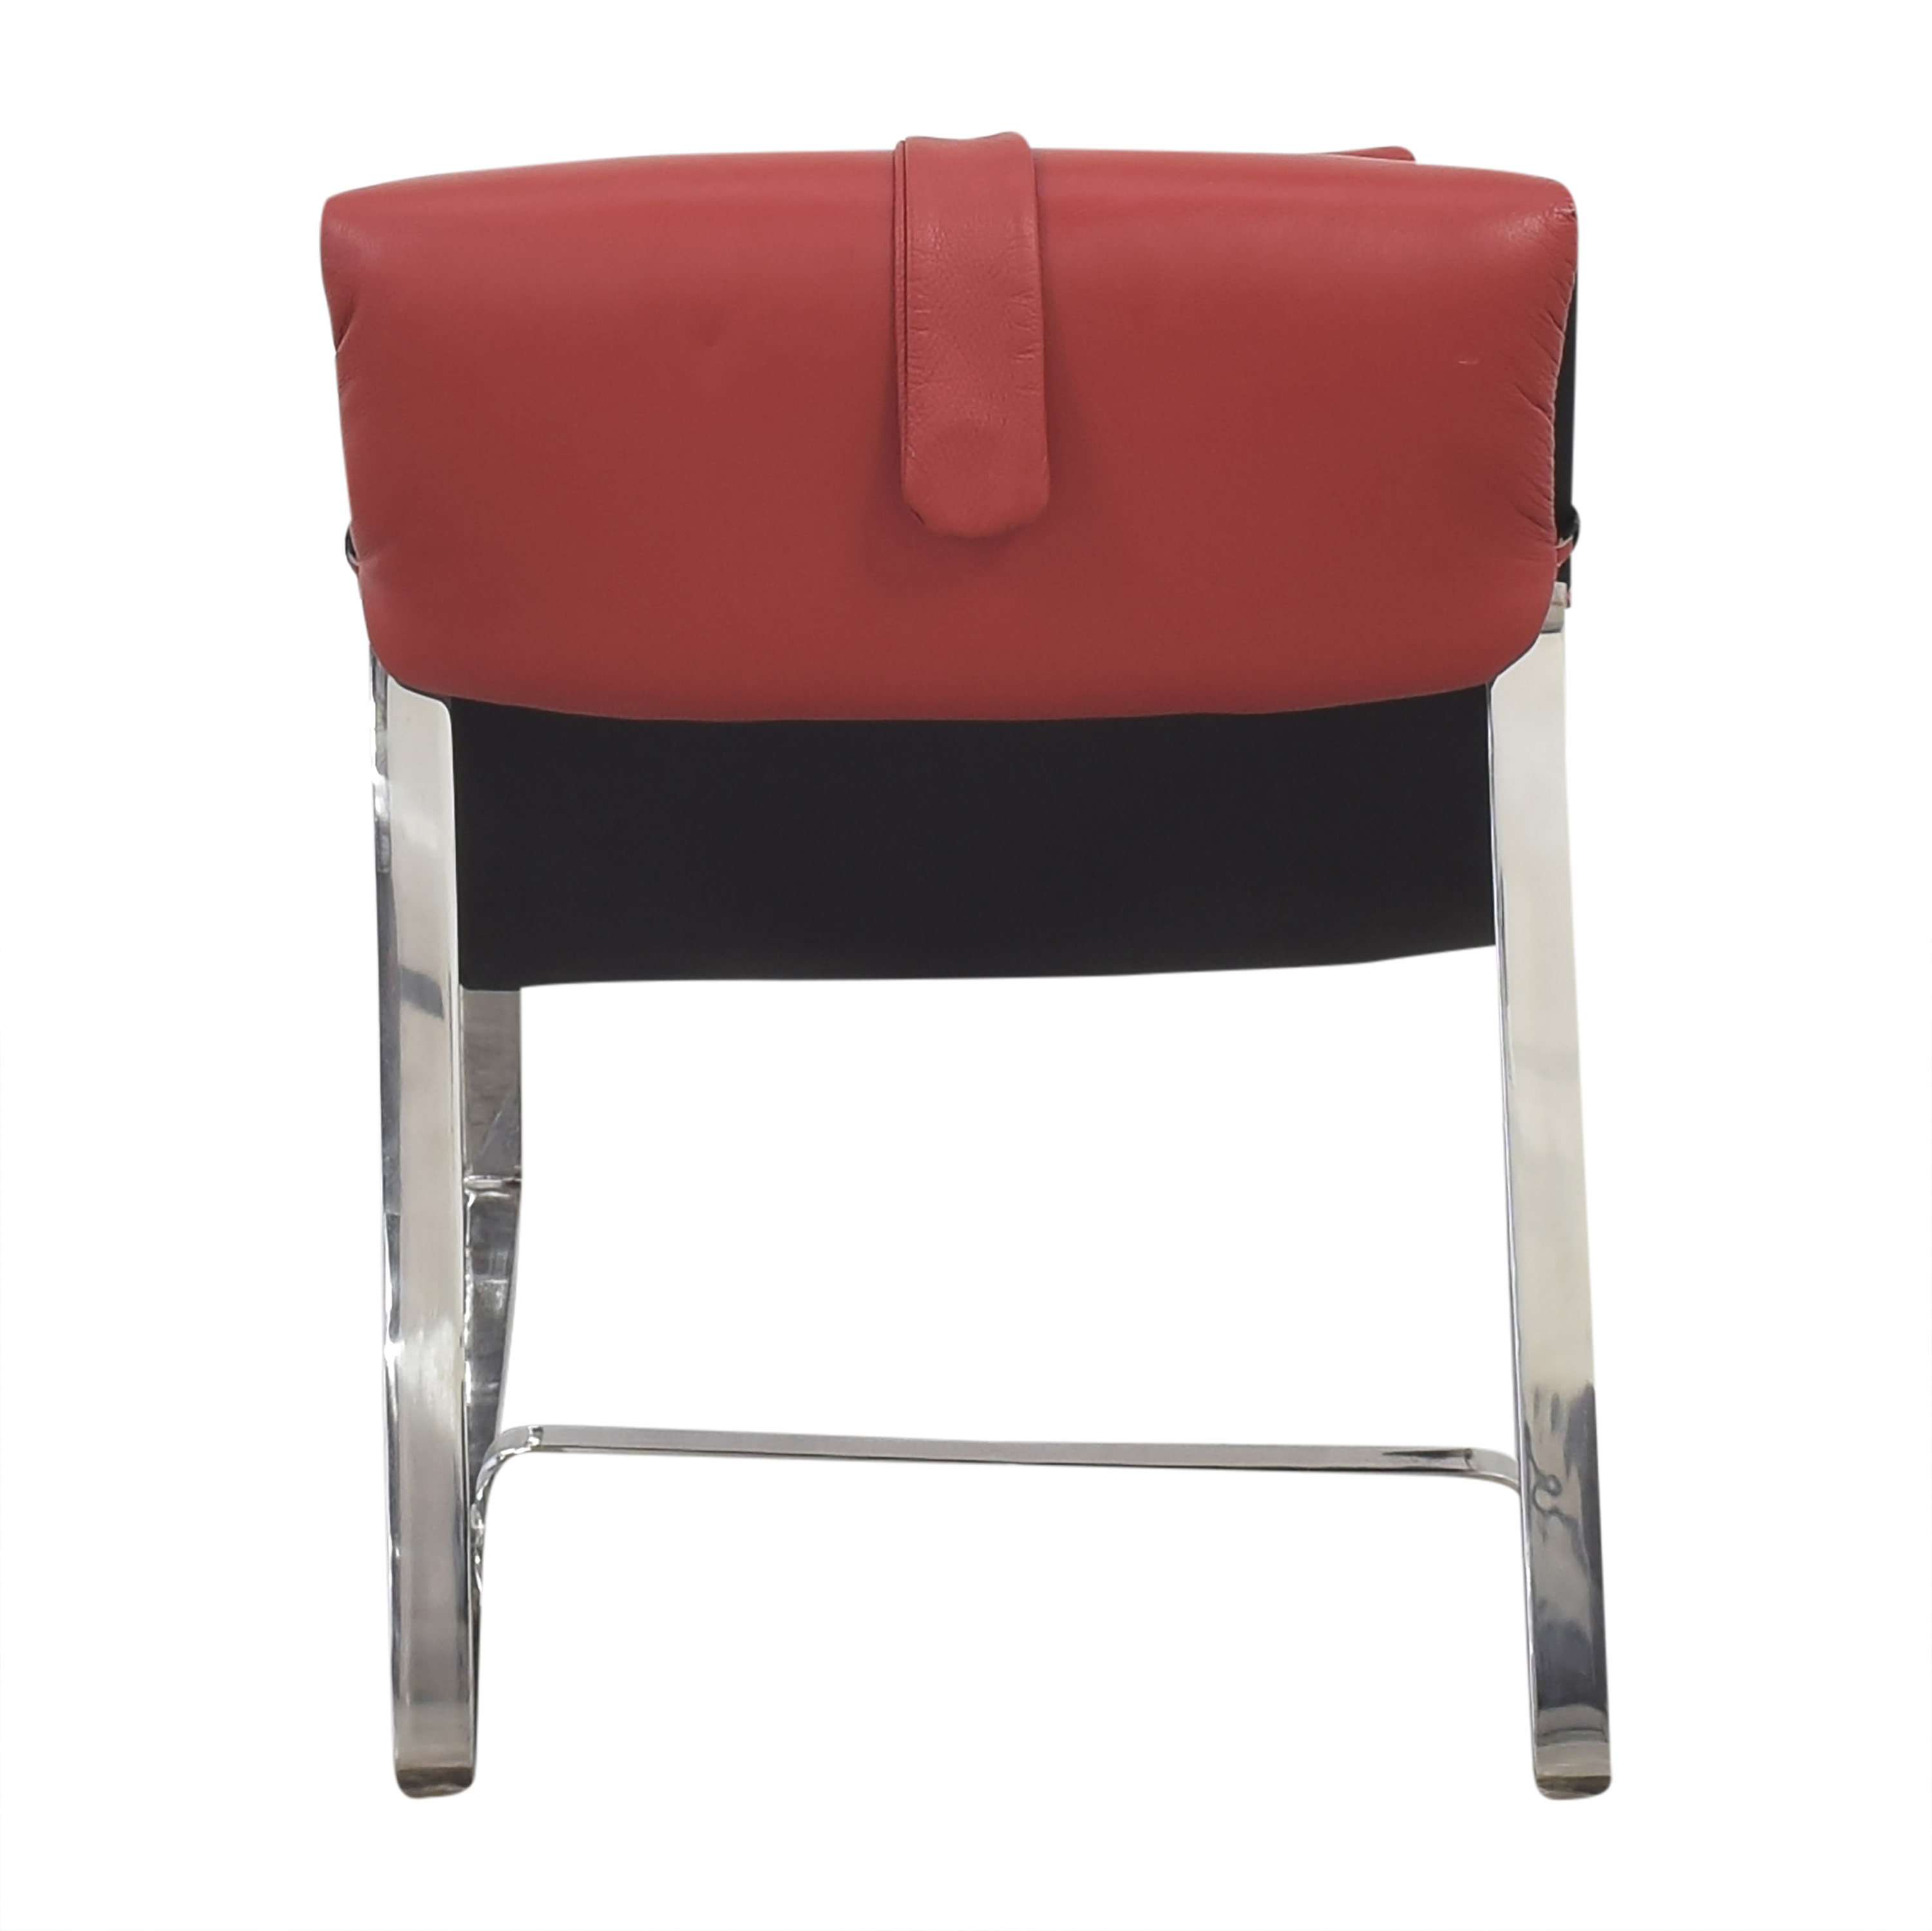 buy  Sling Style Lounge Chair with Ottoman online